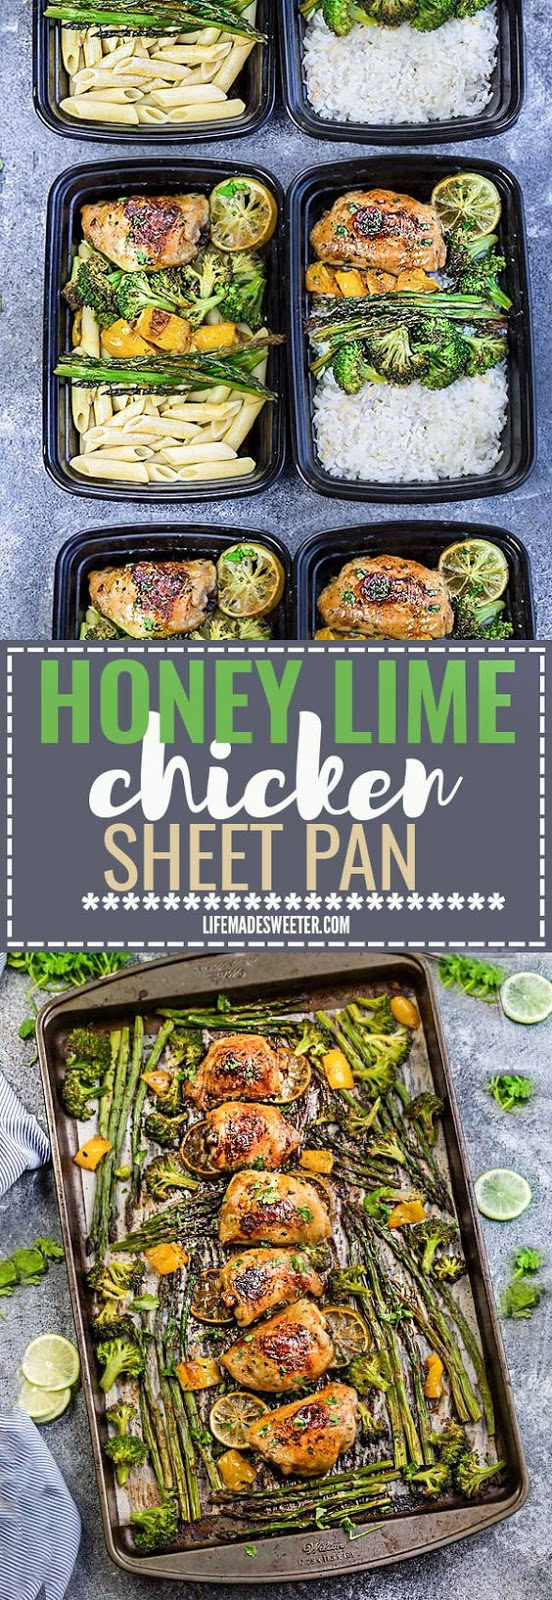 Honey Lime Chicken Sheet Pan with Asparagus